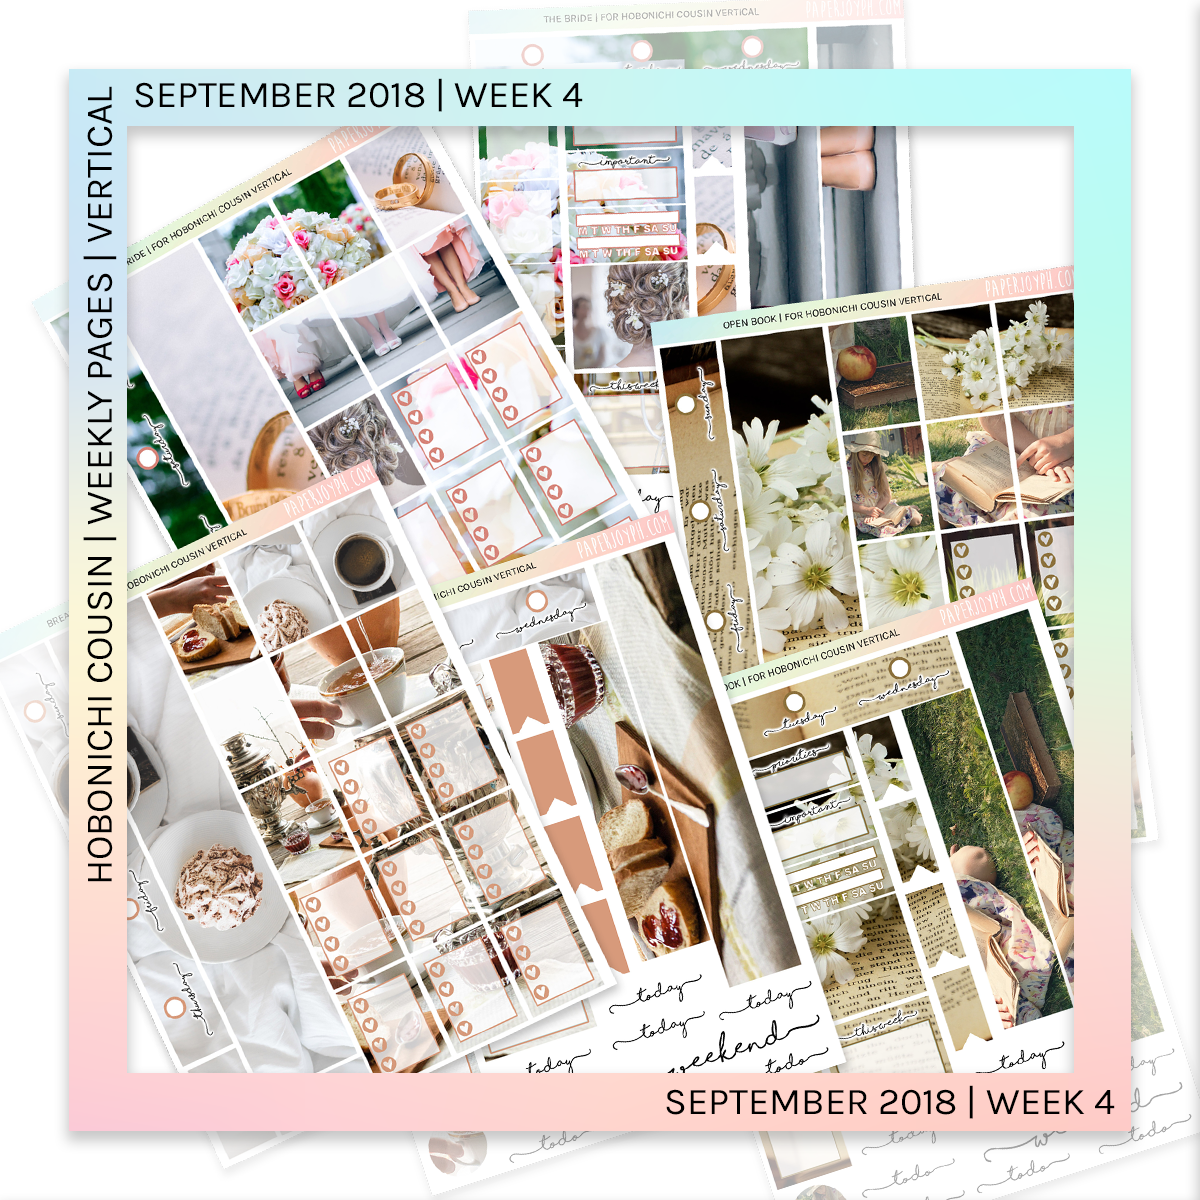 HOBONICHI COUSIN | VERTICAL STICKER KIT | Open Book